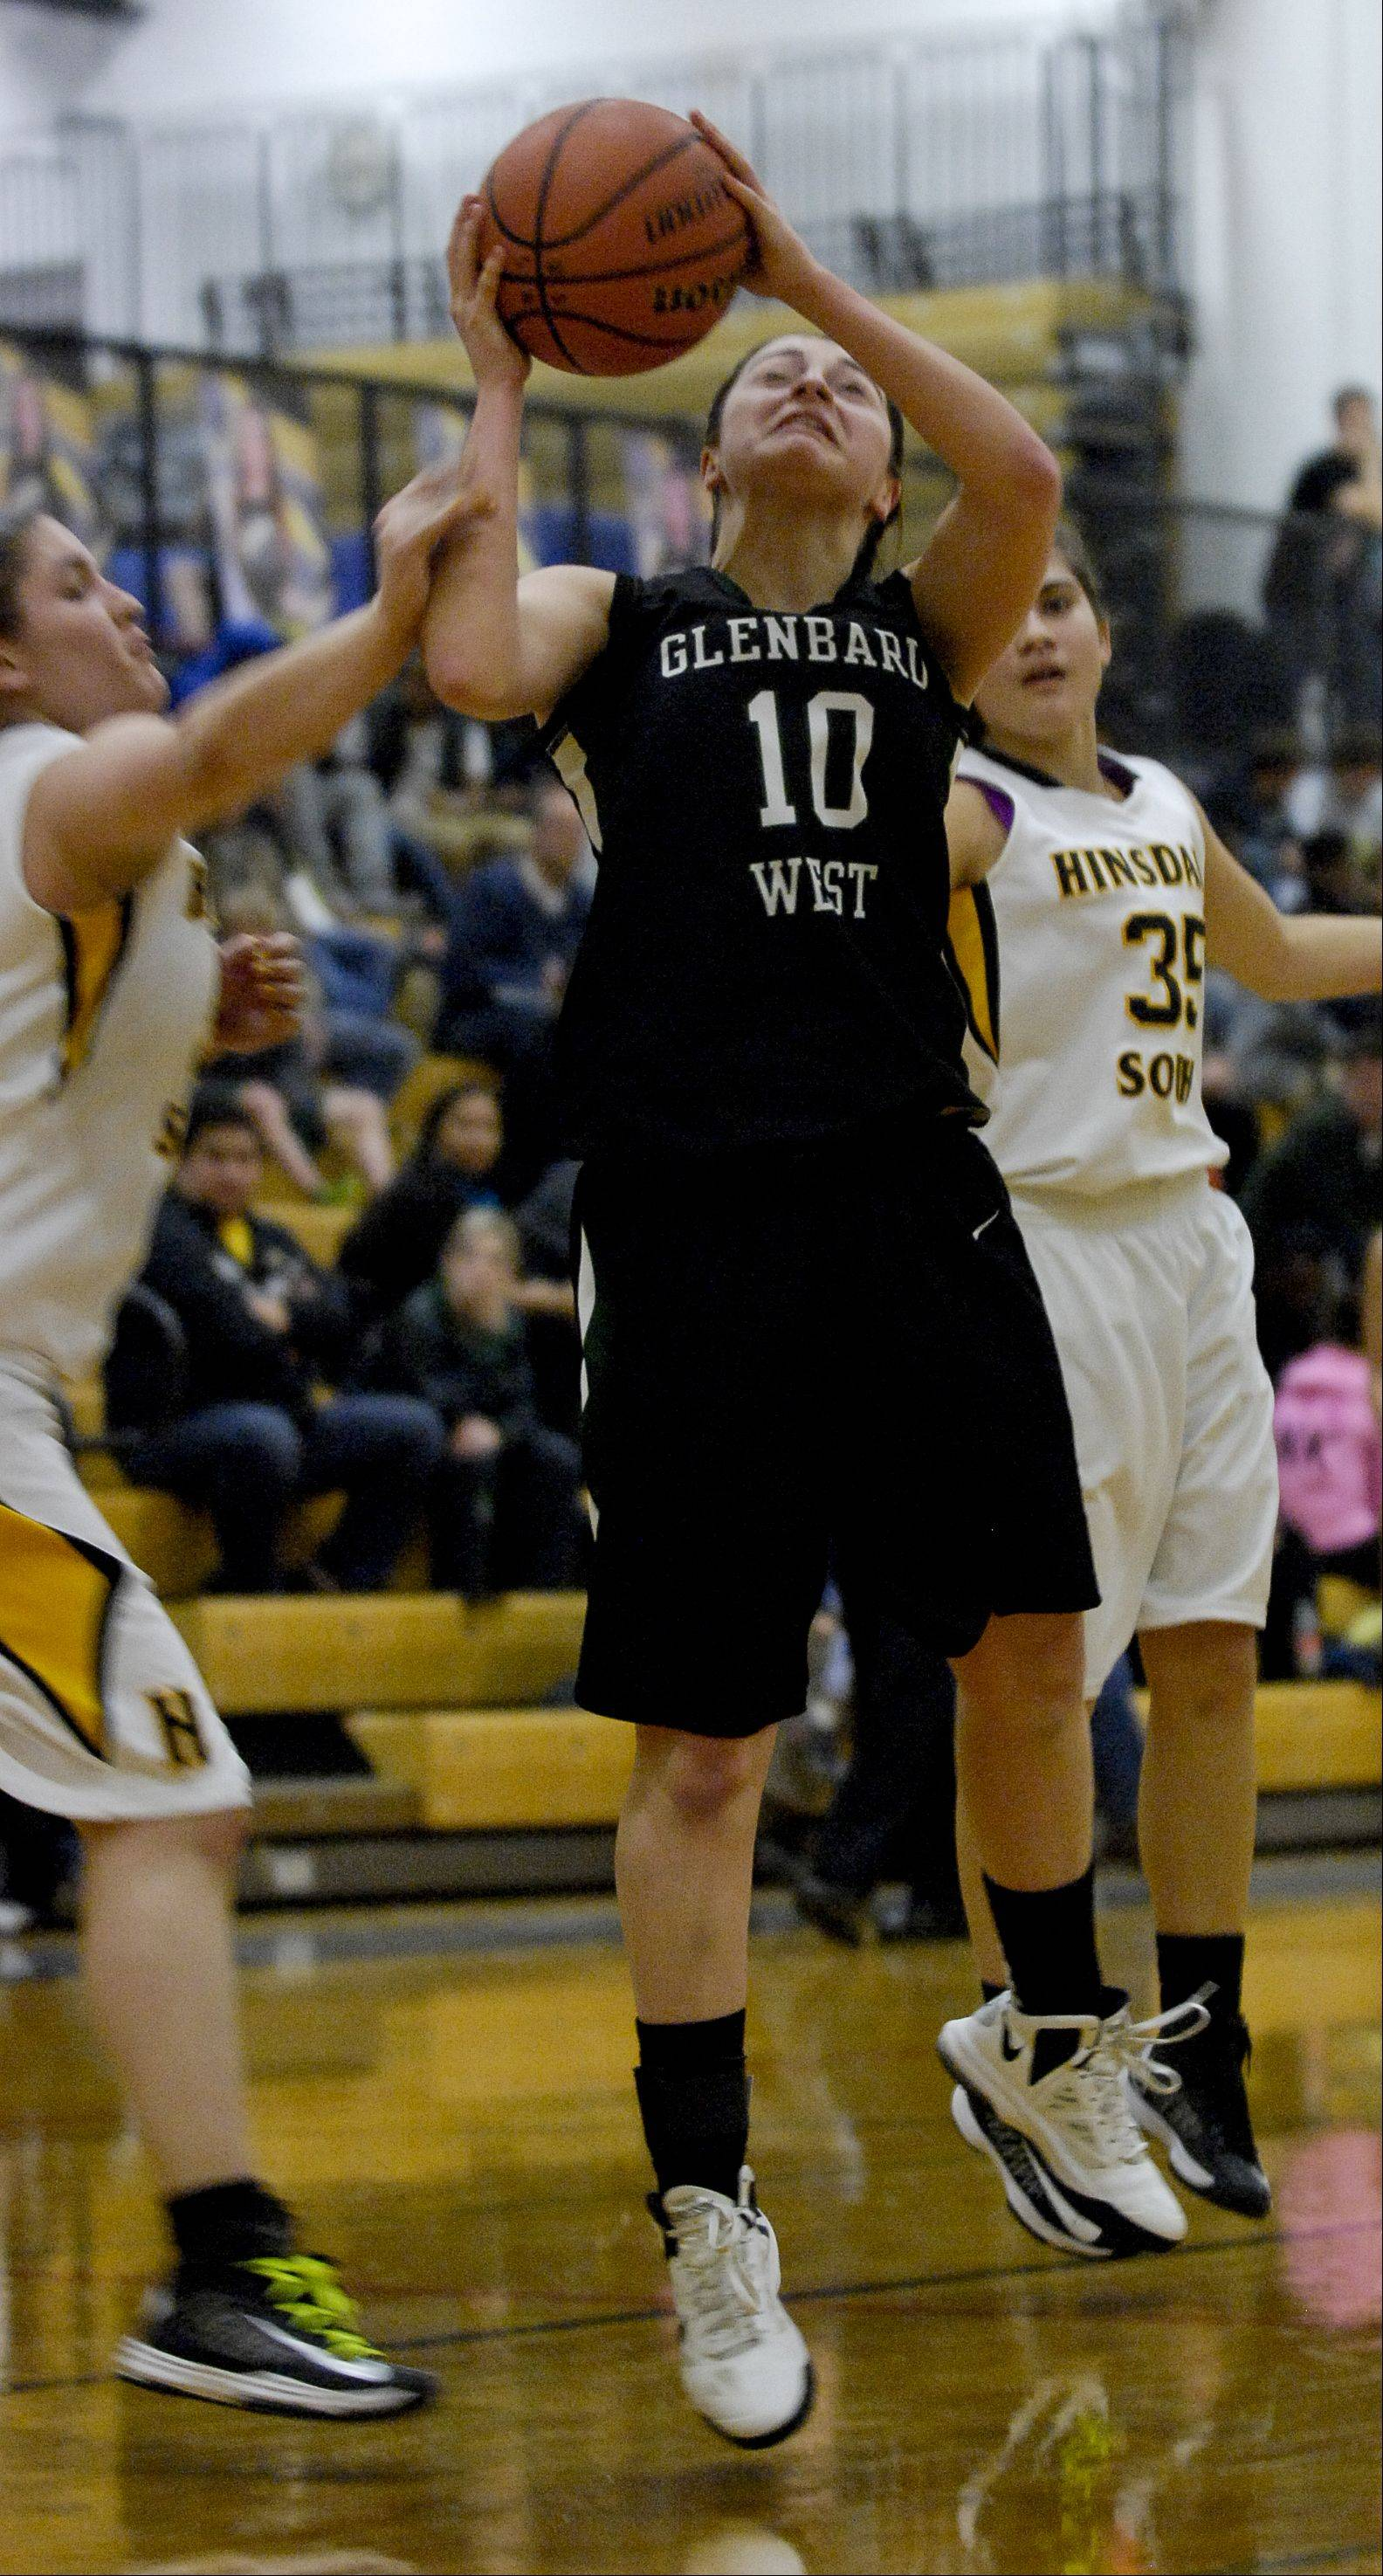 Abby Keirnan of Glenbard West heads to the hoop against Hinsdale South.